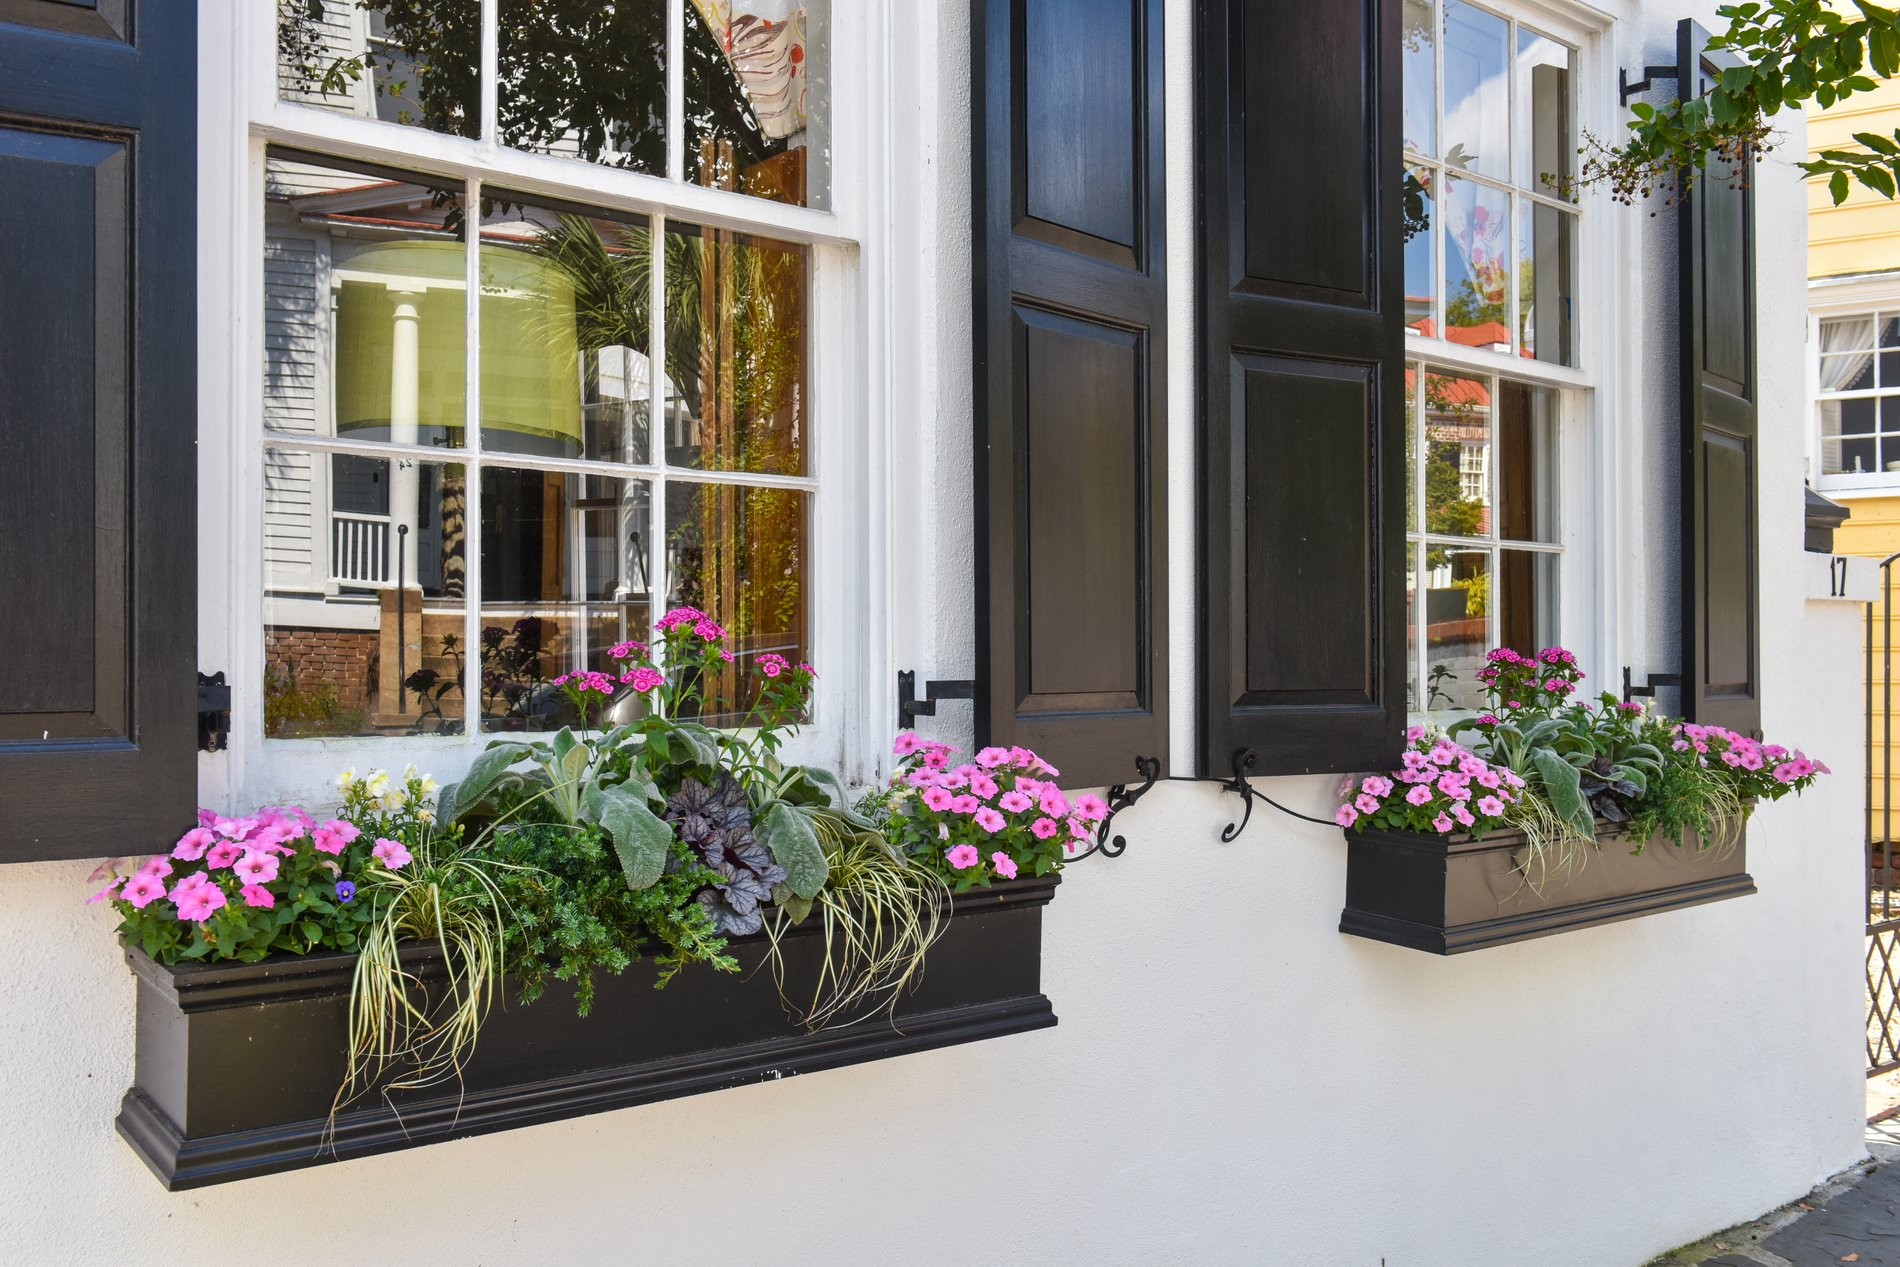 Country farmhouse with stucco siding painted solid white. Black shutters and window flower boxes.